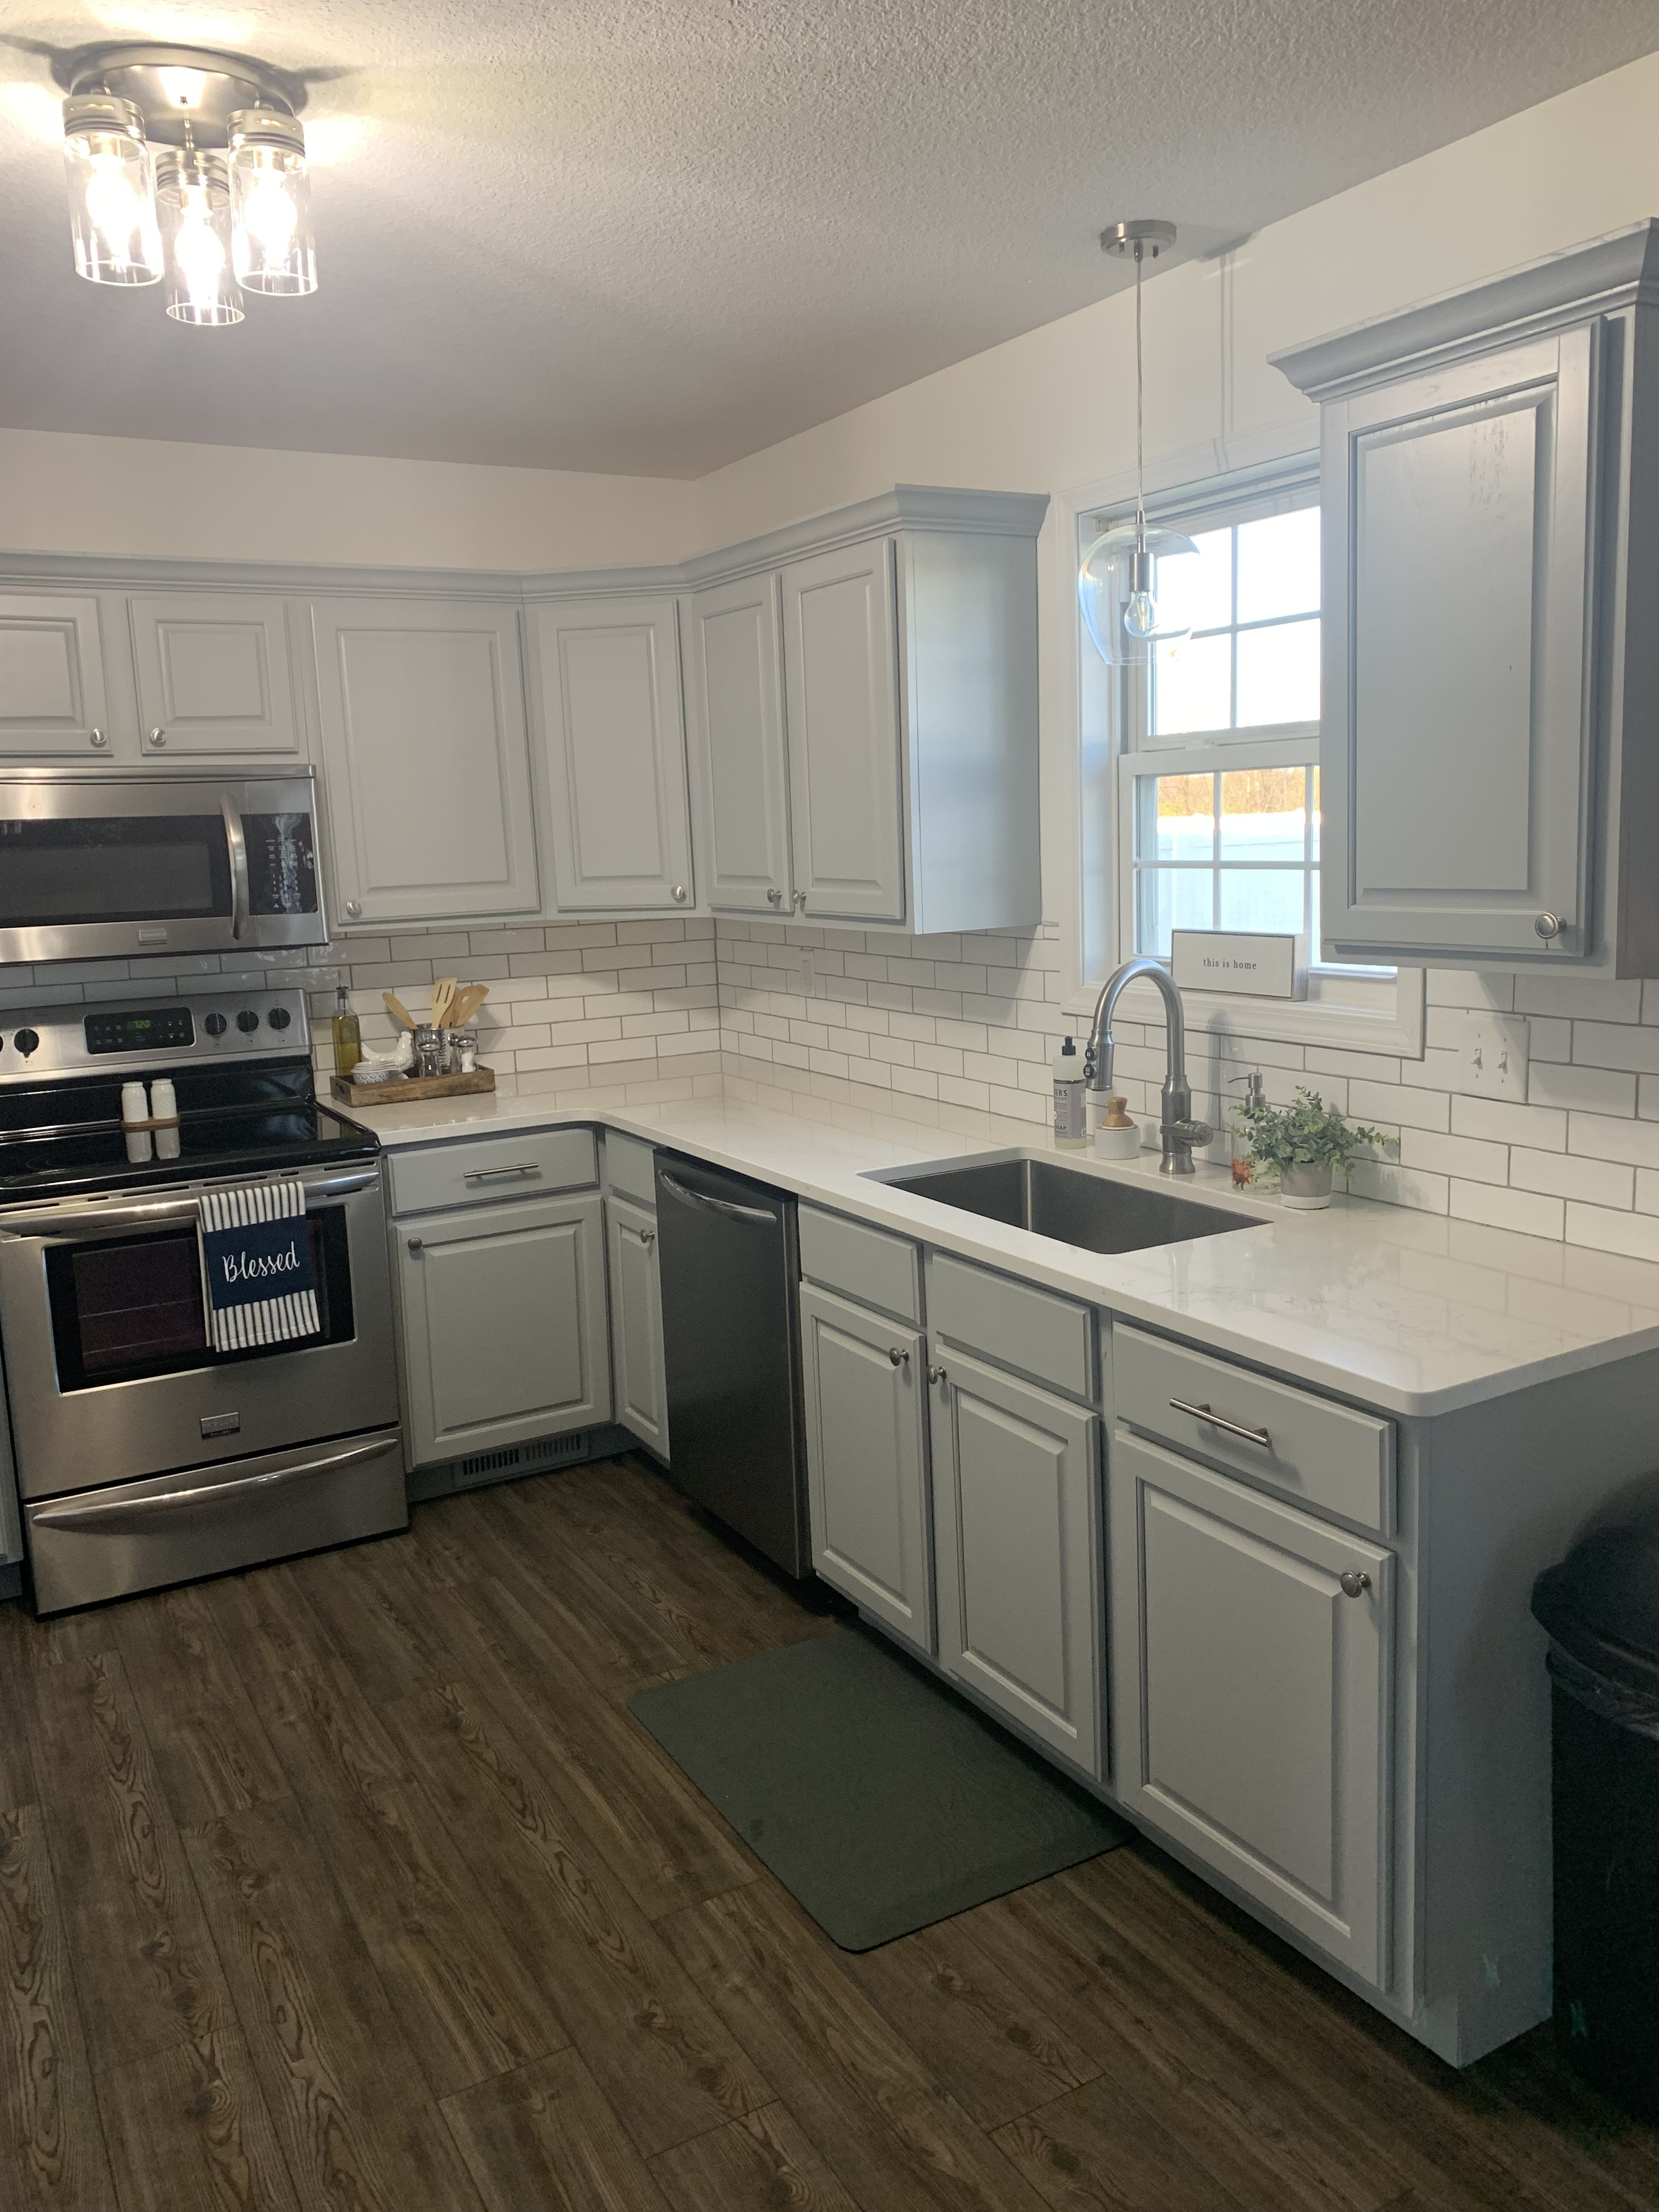 Our Kitchen Remodel Light Gray Cabinets Quartz Counter Tops And